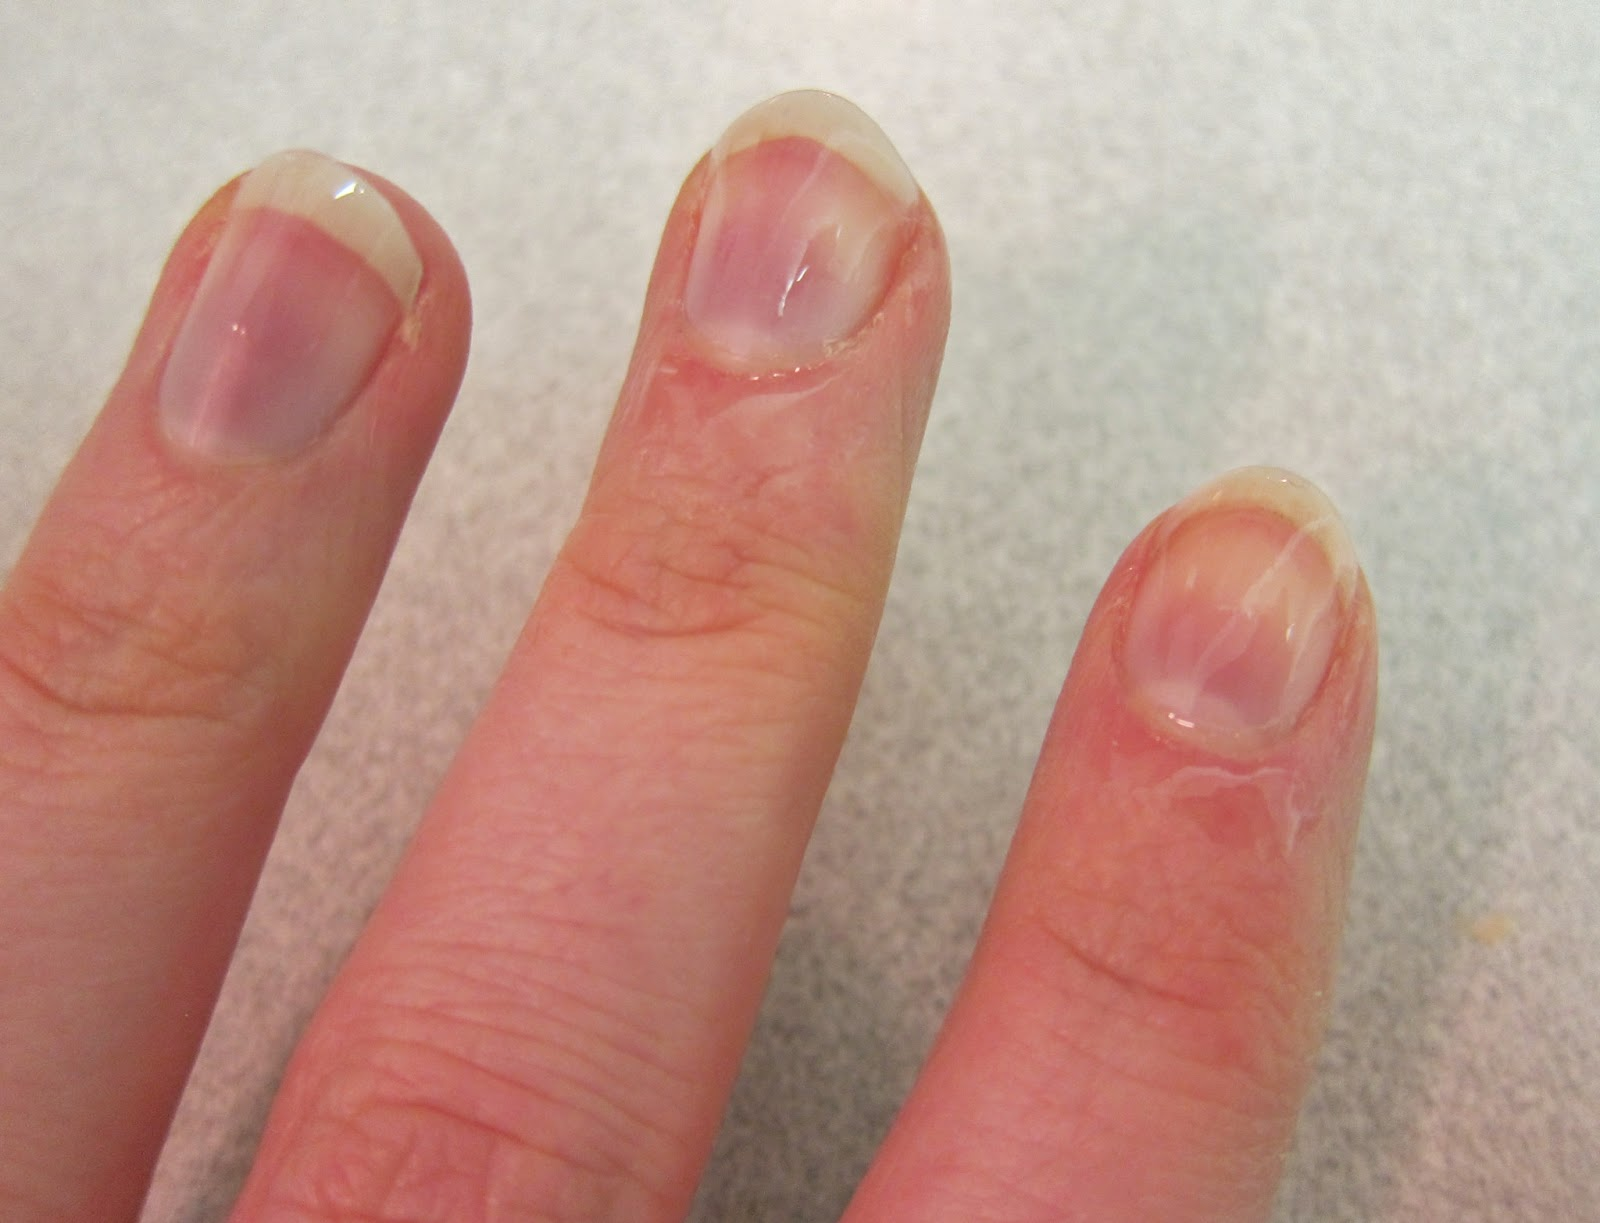 Anemia Fingernails Bing Images